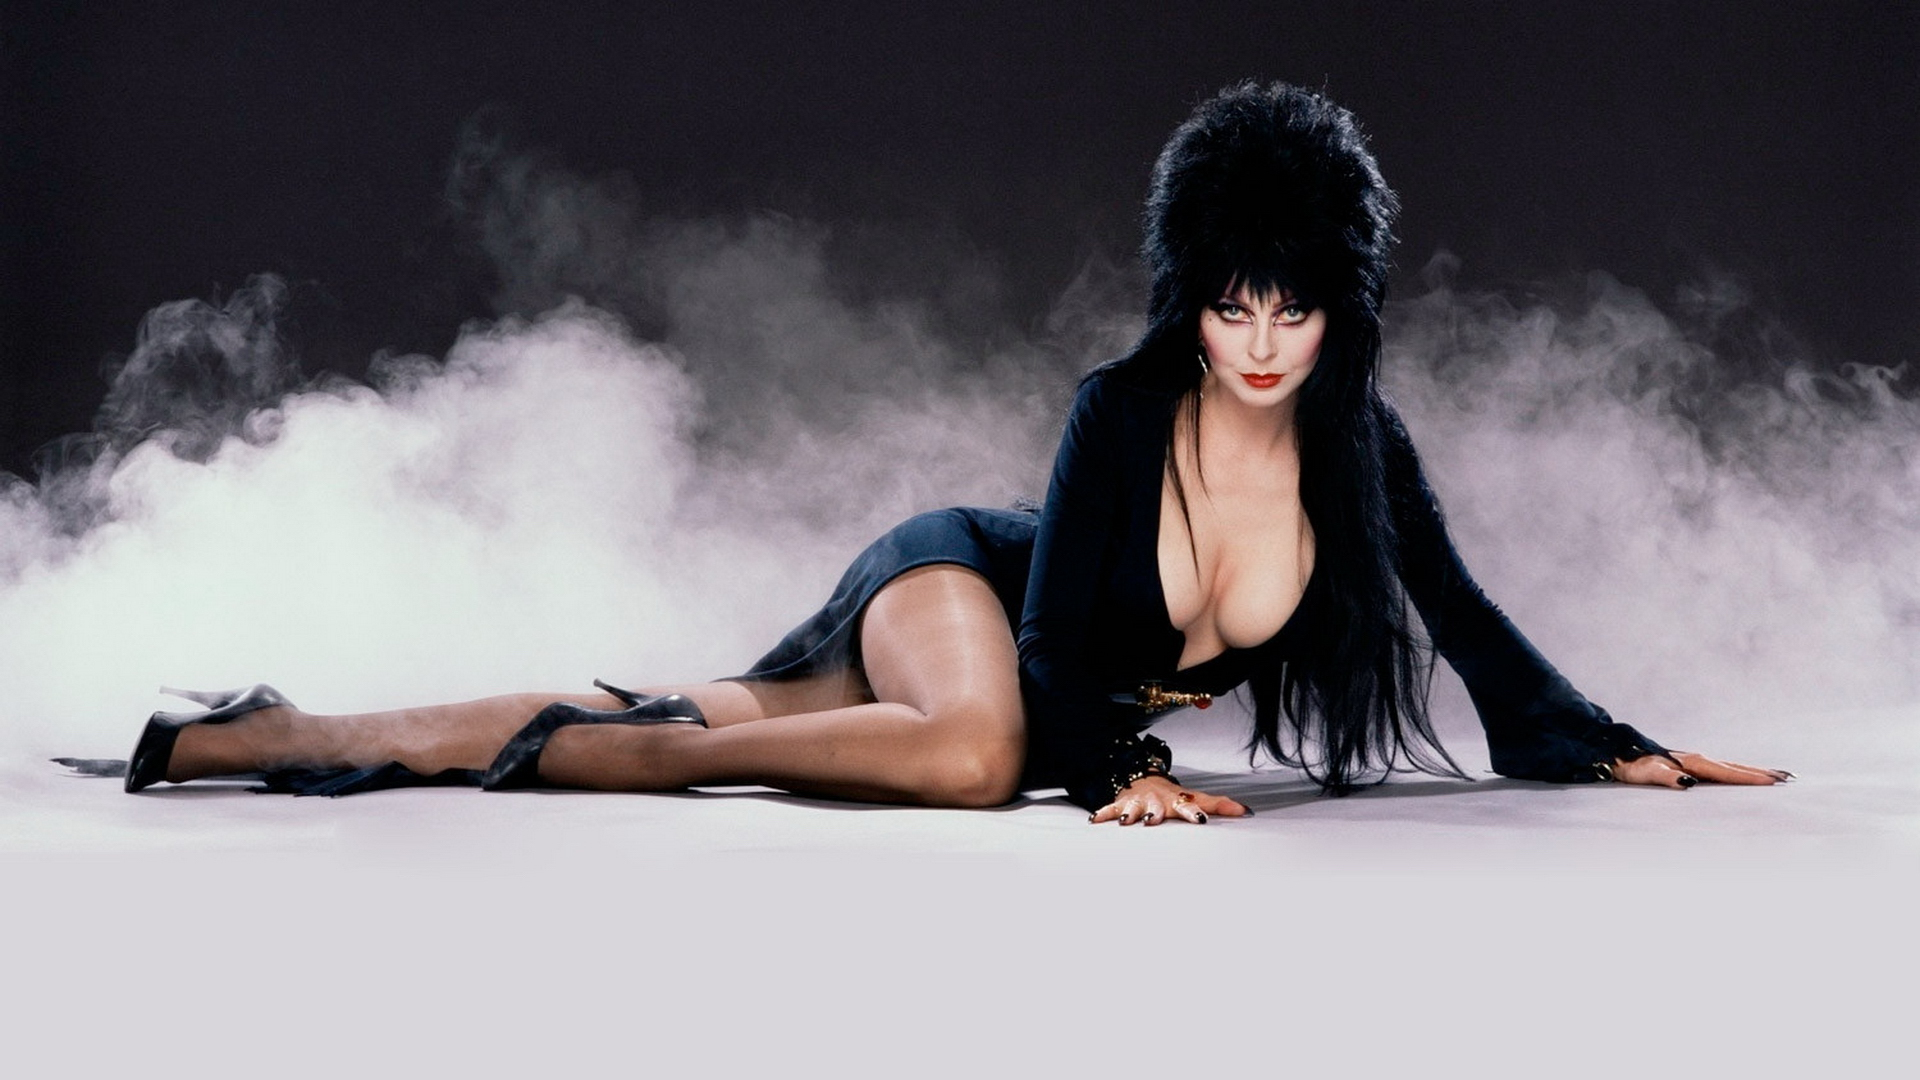 elvira-mistress-of-the-dark-wallpaper-hd